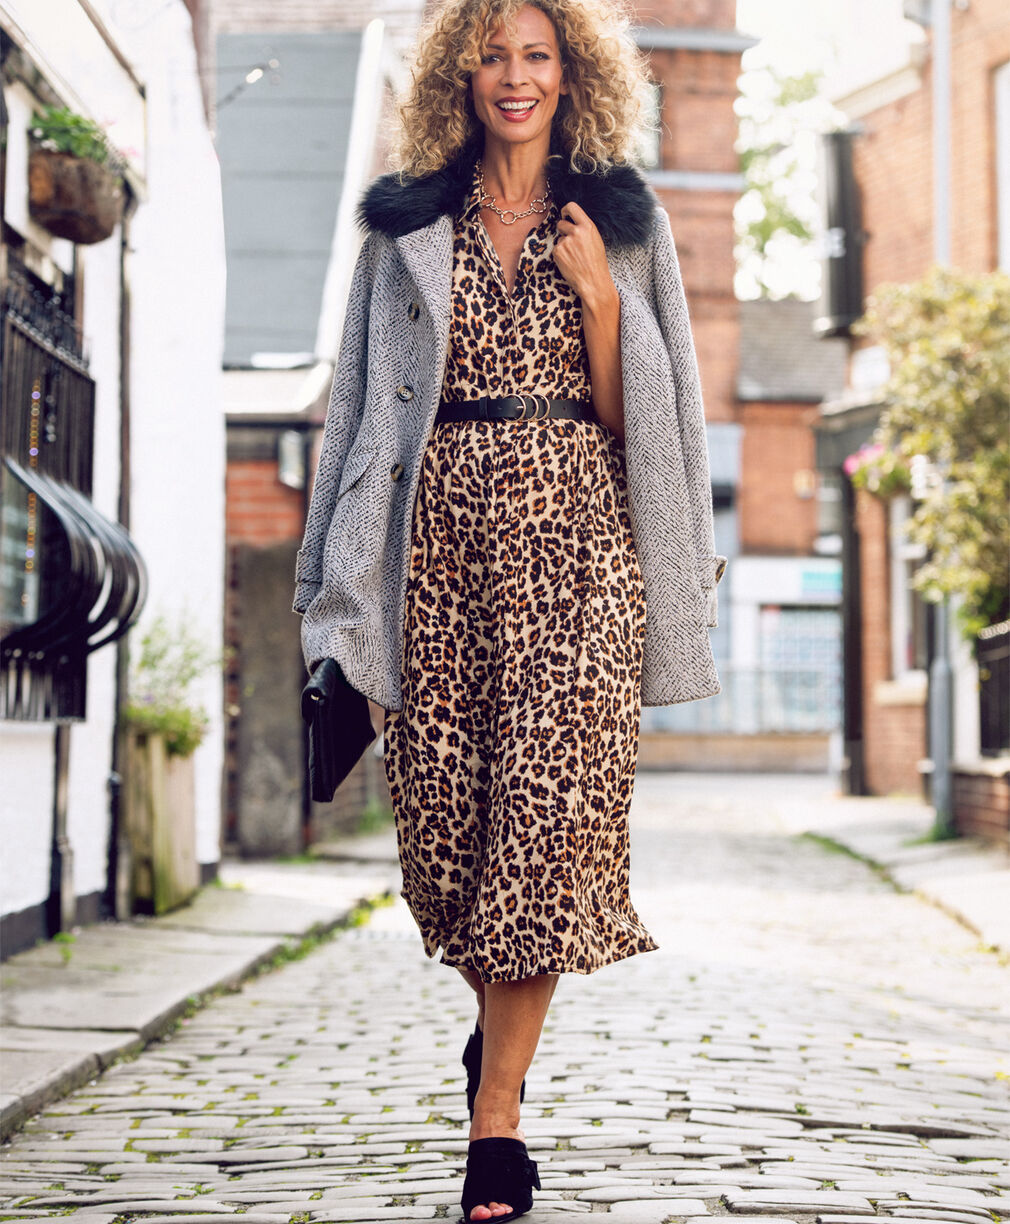 The Feelgood Coat   Double Breasted Feelgood Coat   Frockstar Button-through Dress   By Cotton Traders